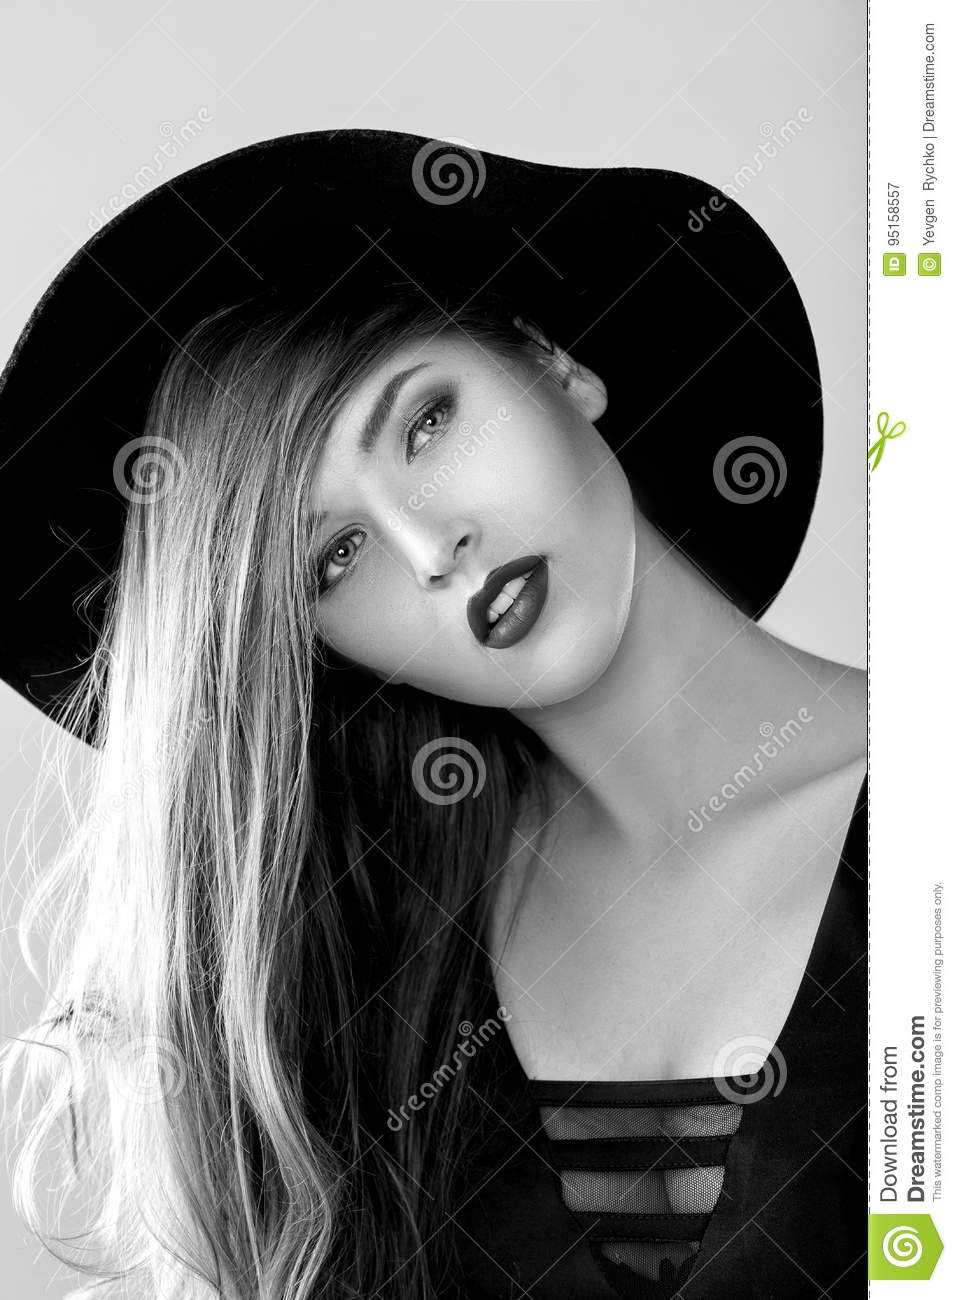 portrait noir et blanc de belle femme sexy dans le chapeau noir image stock image du robe. Black Bedroom Furniture Sets. Home Design Ideas